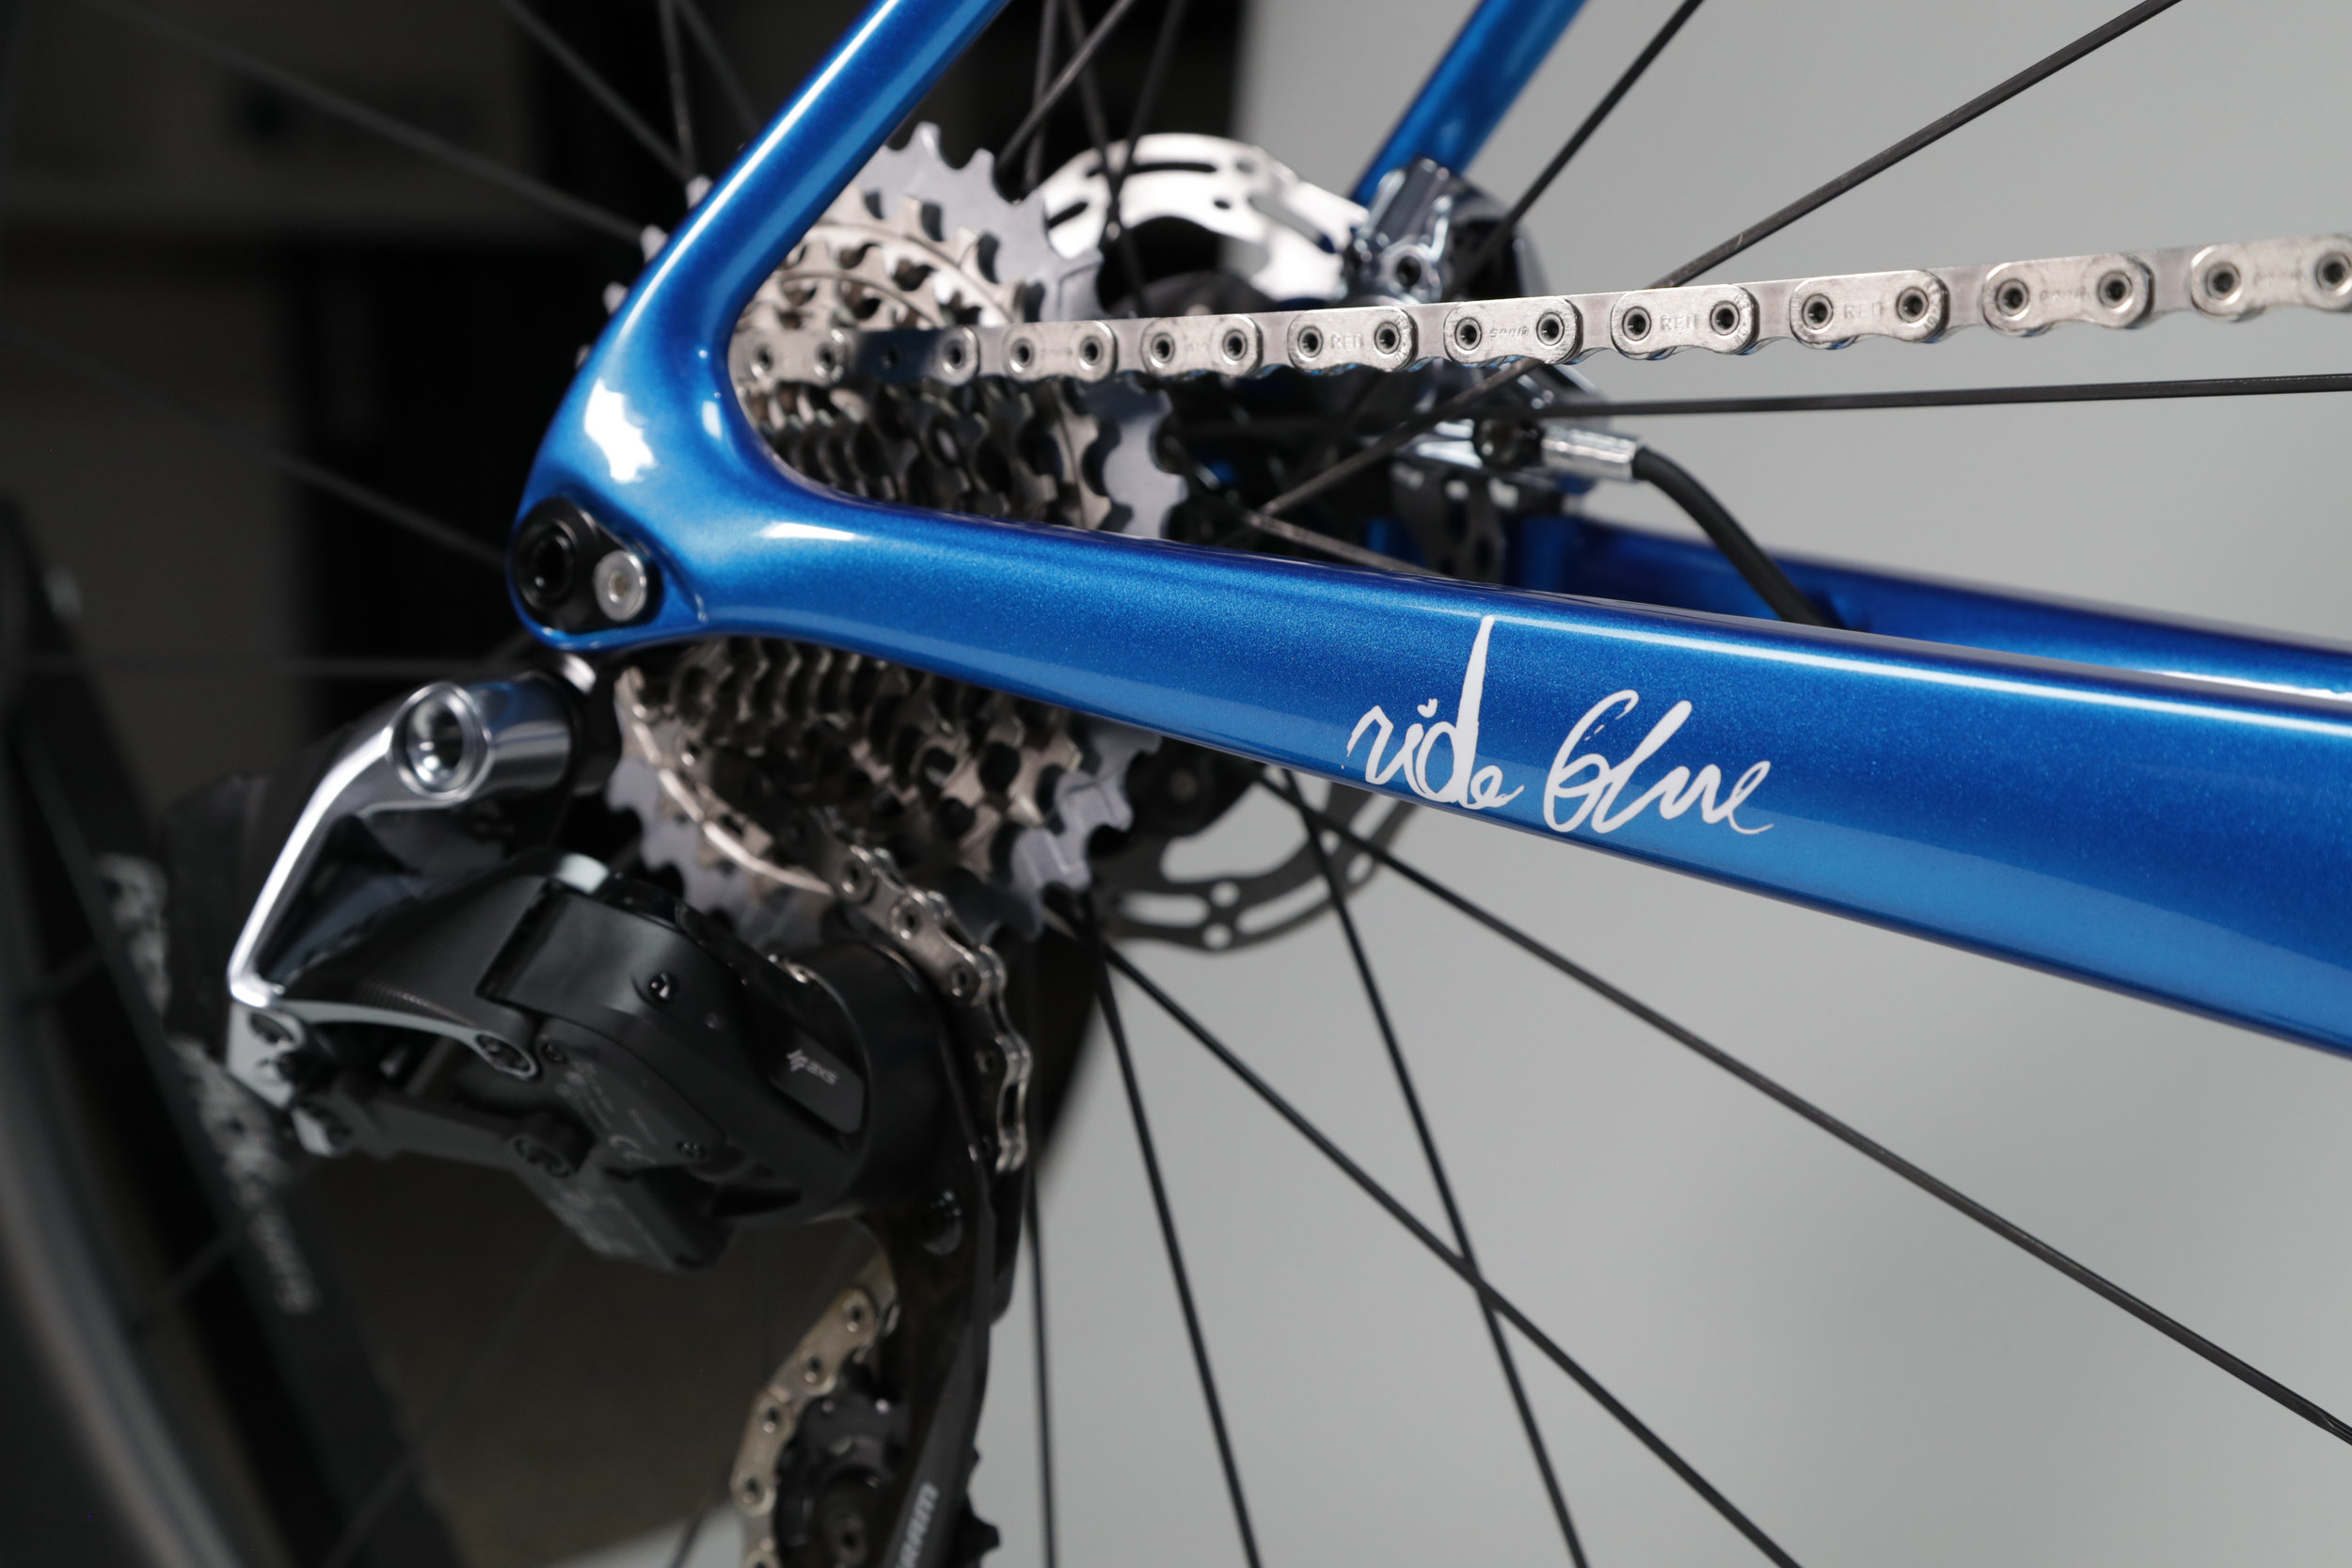 Ovalized chain stays and dropped seat stays provide compliance with increased responsiveness.